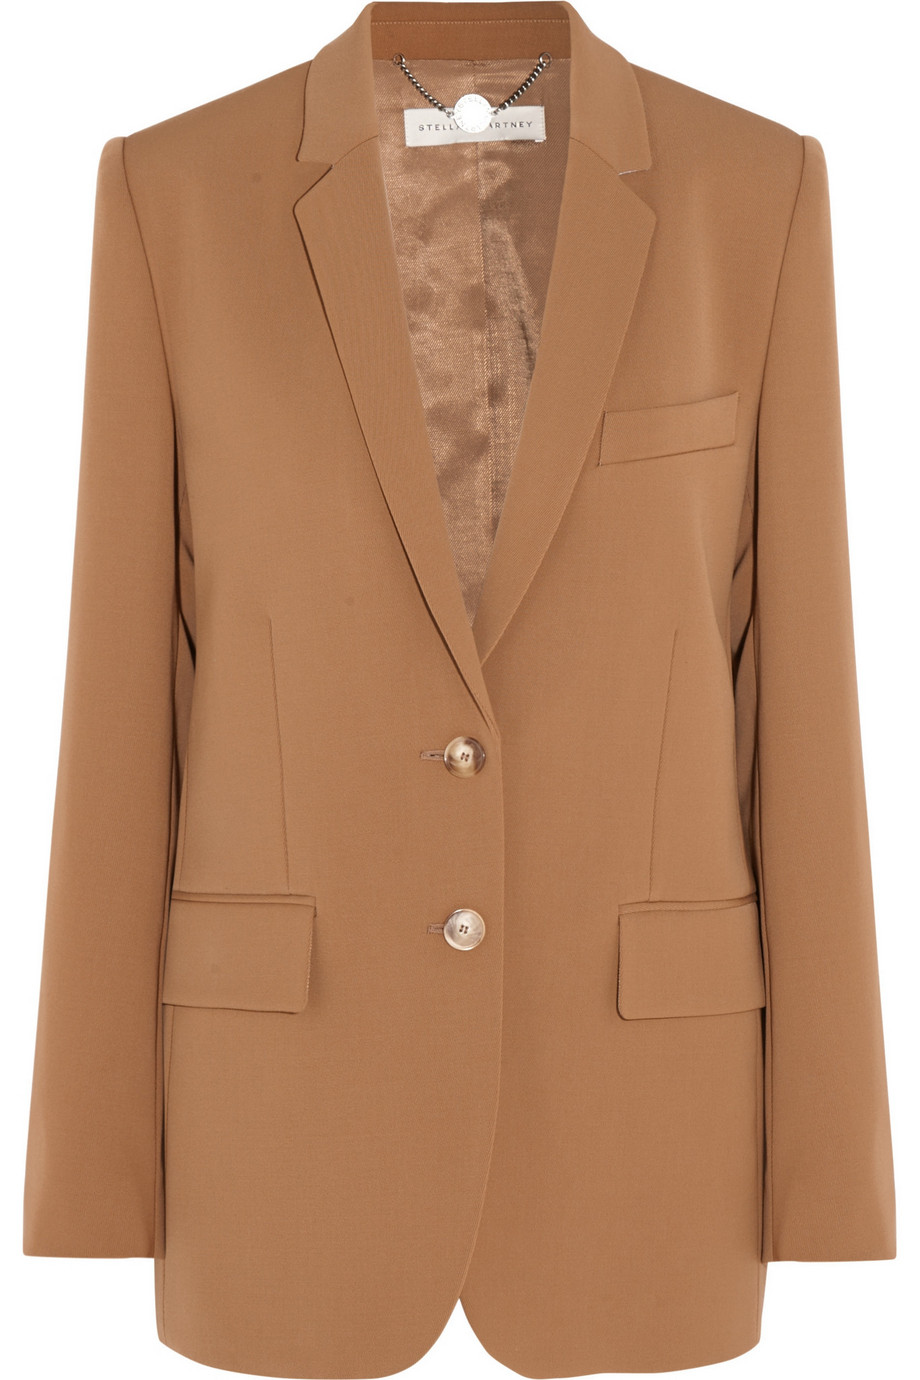 Stella Mccartney Wool-Twill Blazer, Tan, Women's, Size: 36